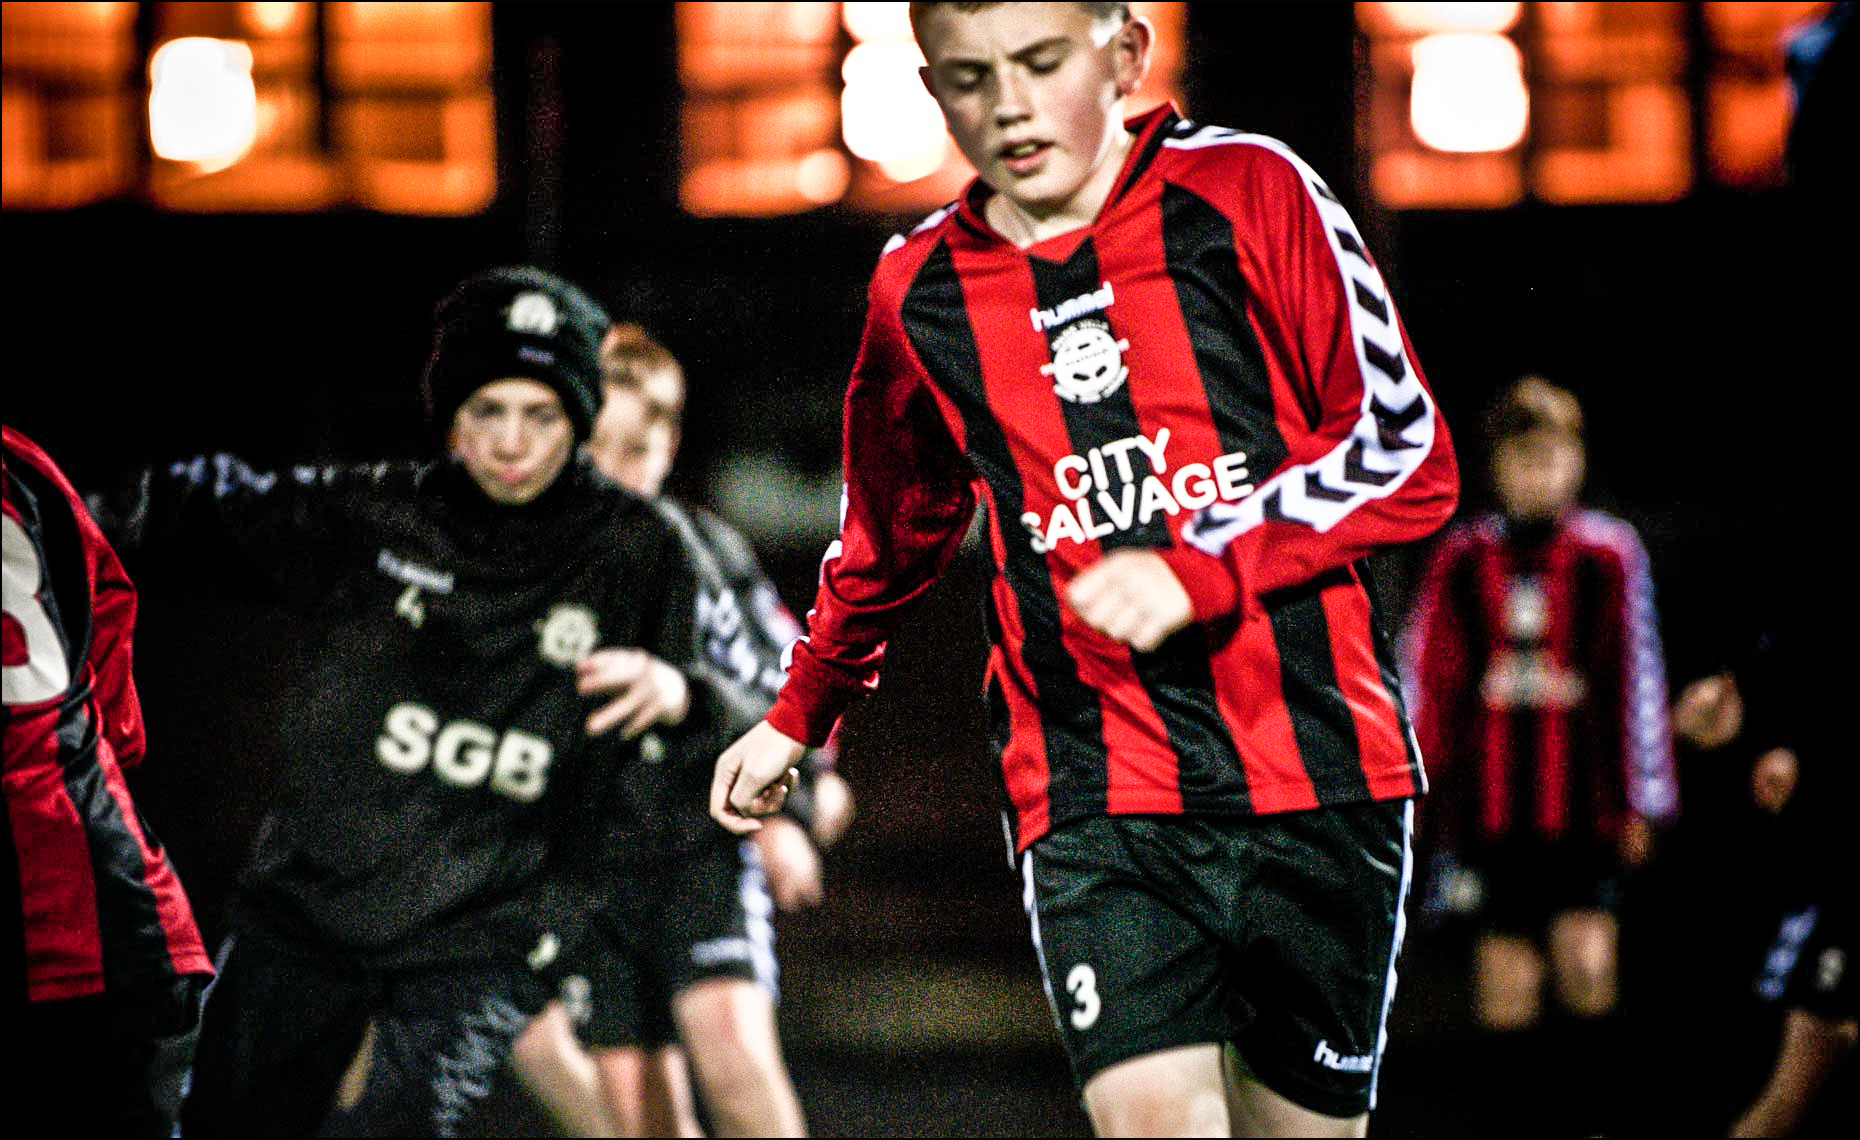 48 youth soccer football charity Scotland  ©Paul Hampton Photographer Glasgow